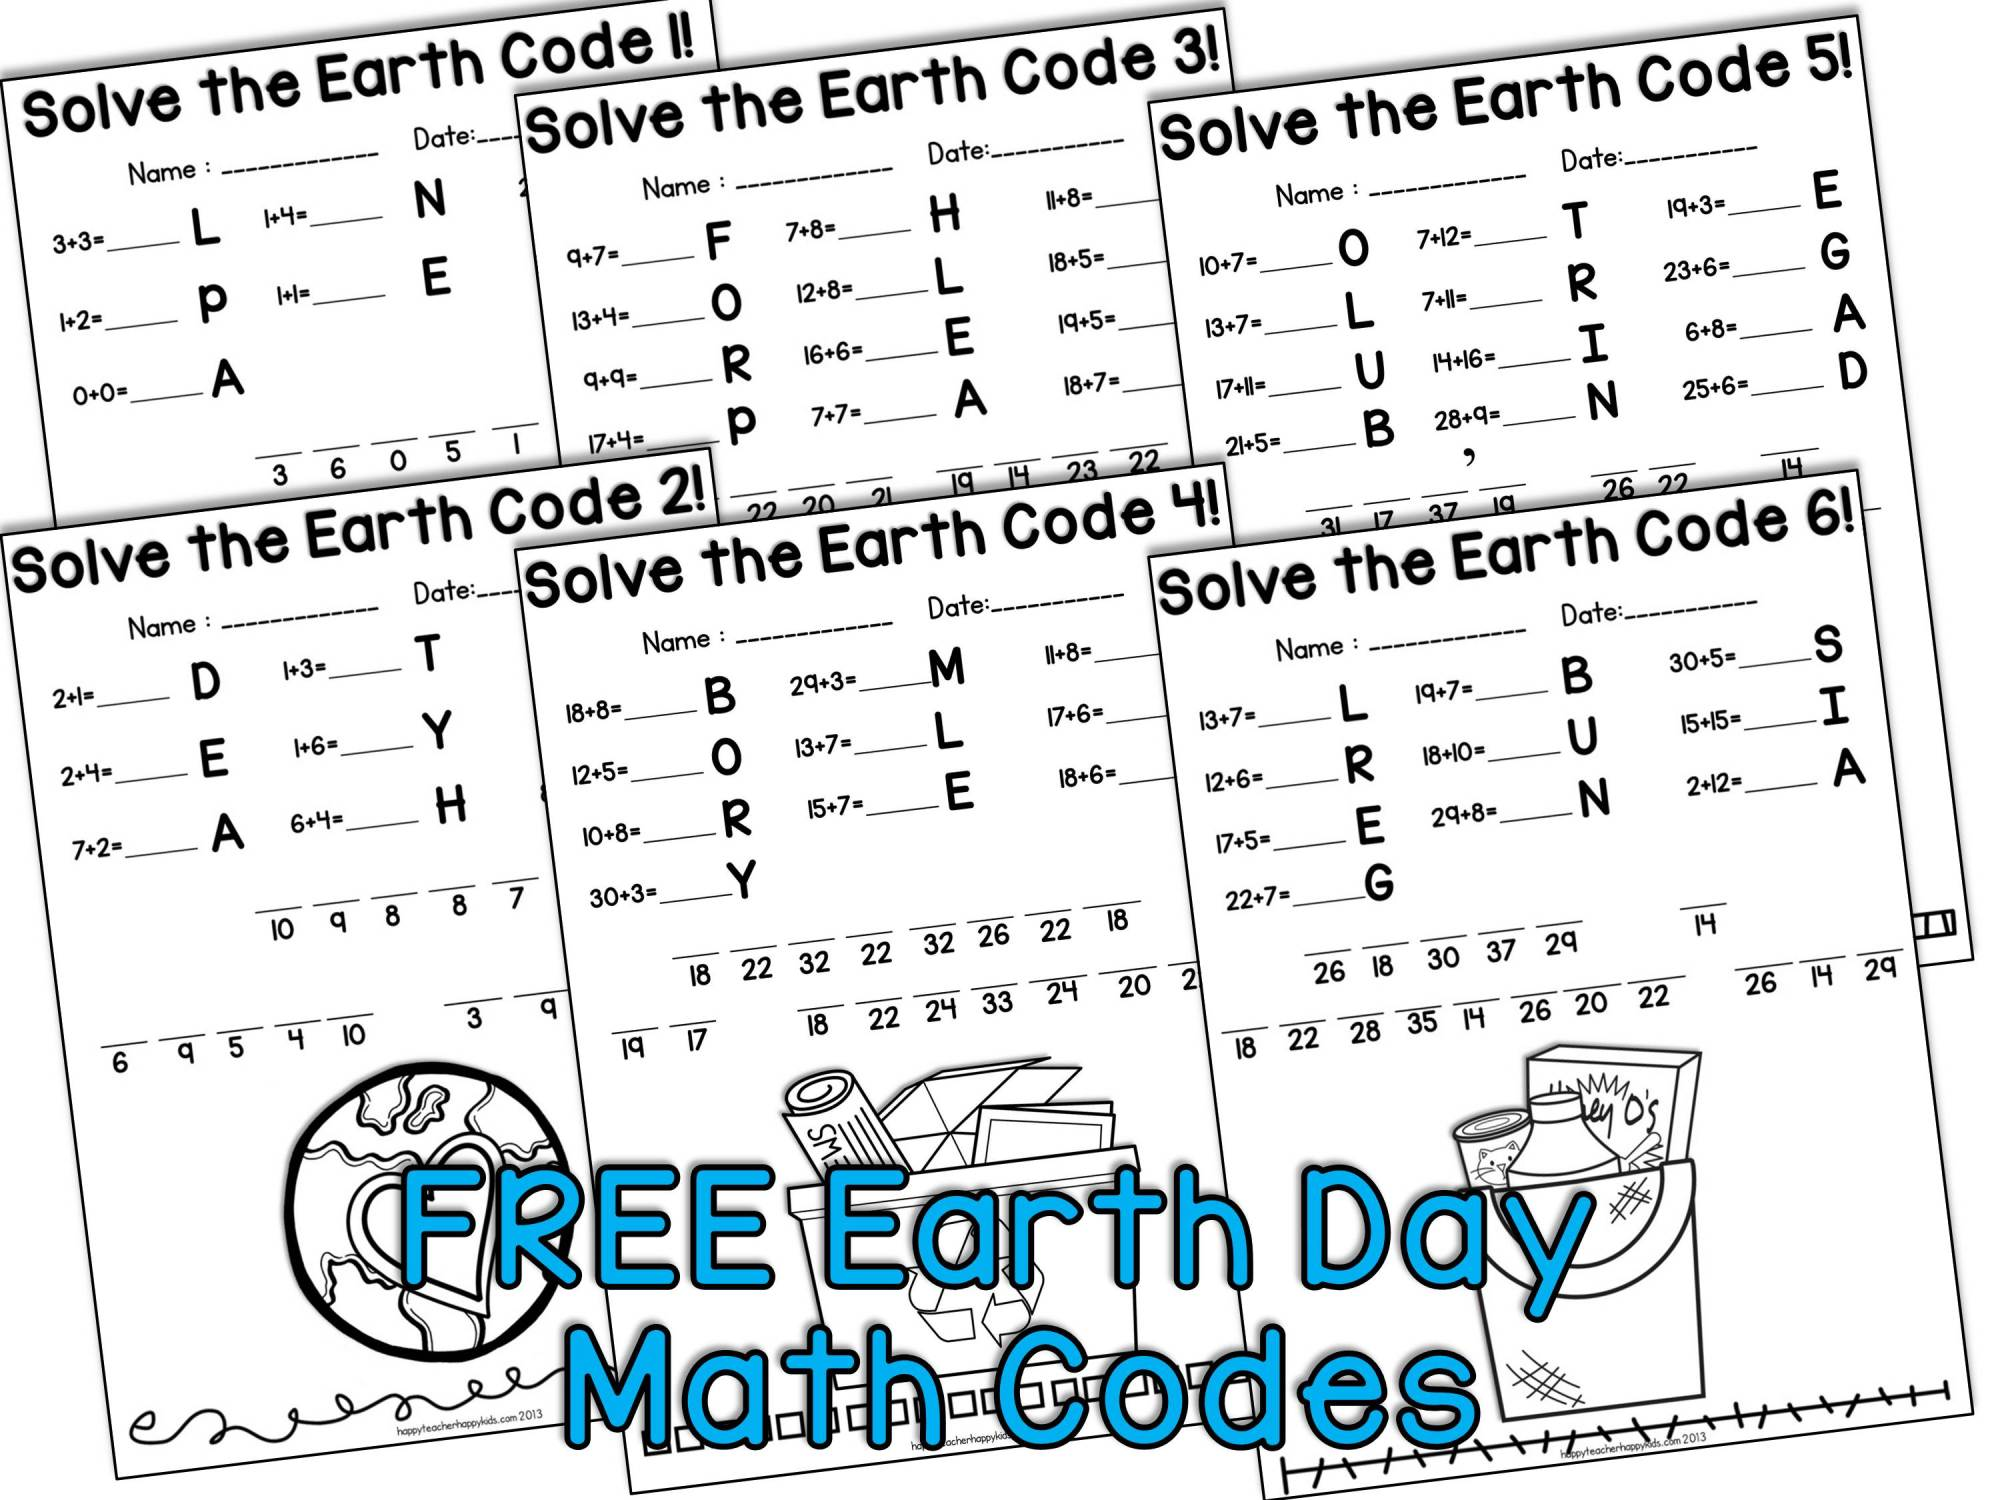 hight resolution of Earth Day Worksheet Middle School   Printable Worksheets and Activities for  Teachers